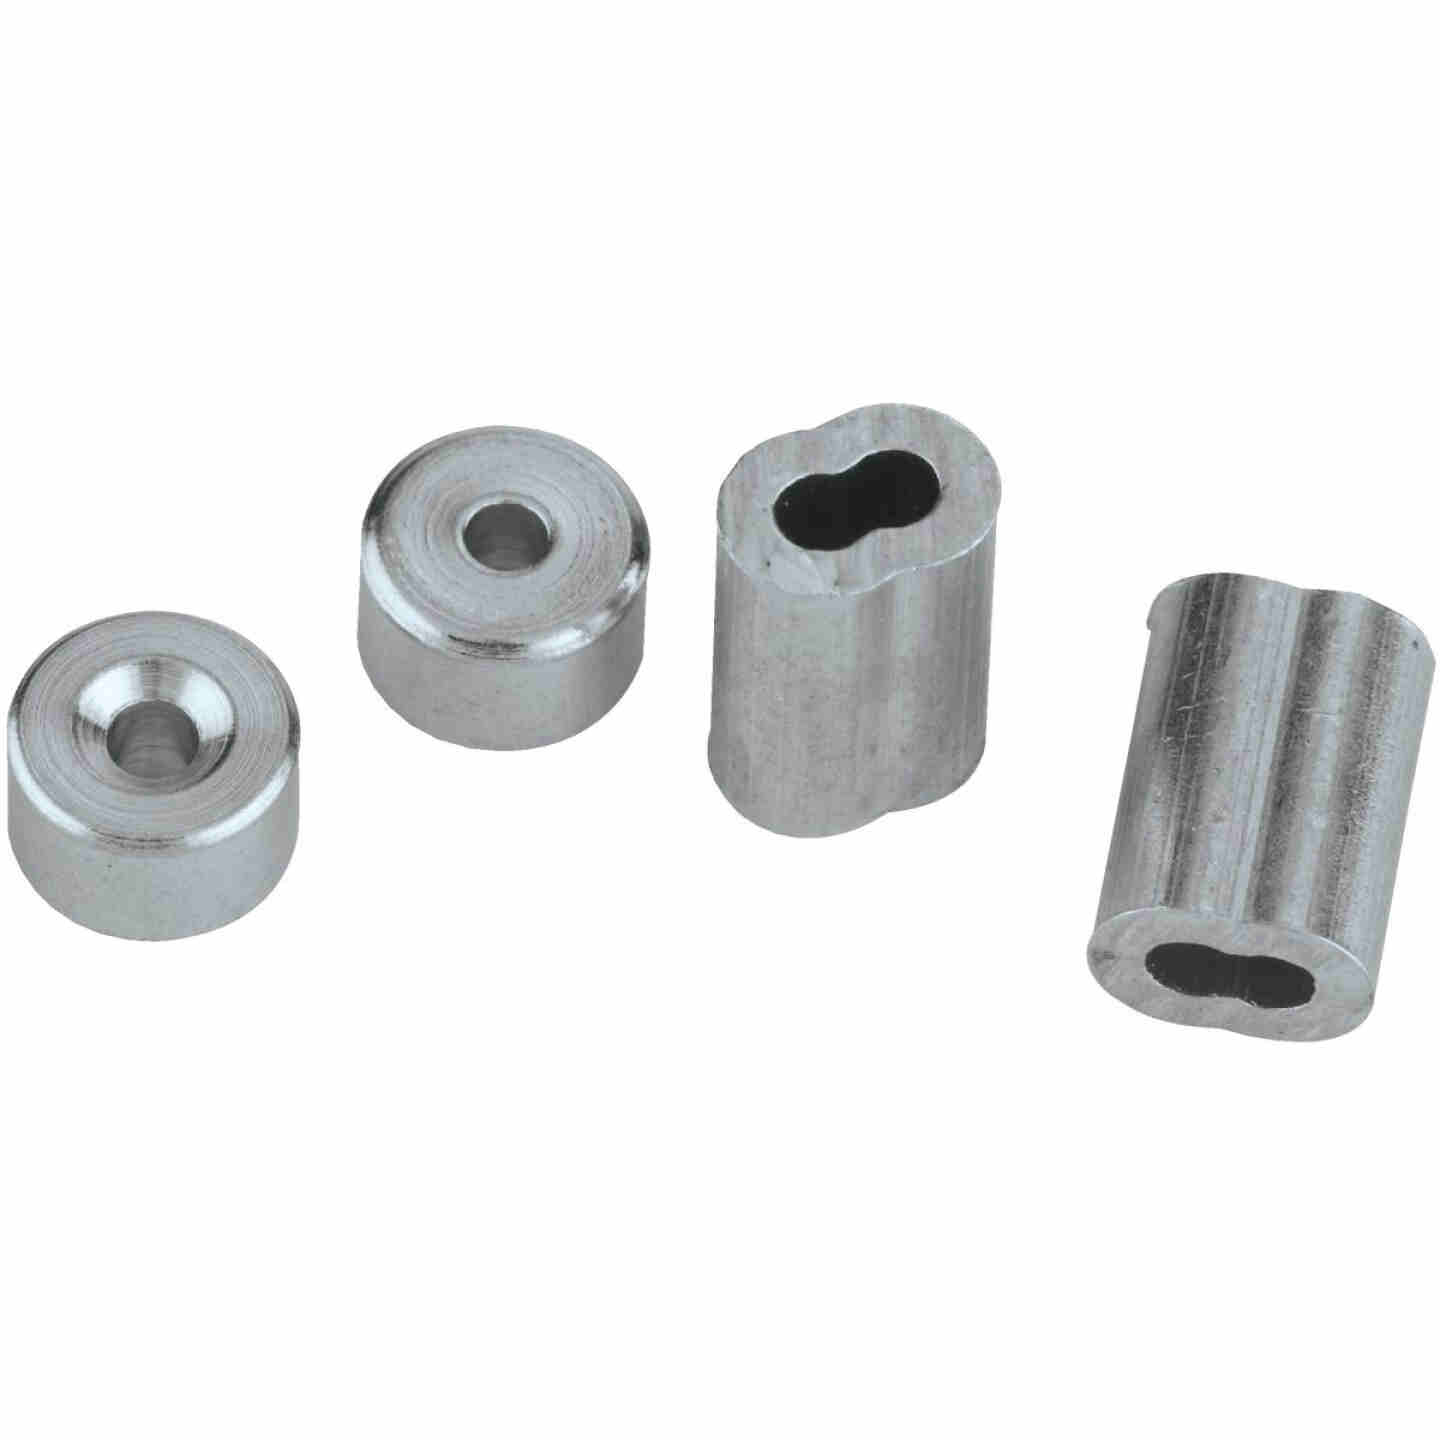 """Prime-Line Cable Ferrules and Stops, 3/32"""", Aluminum Image 3"""